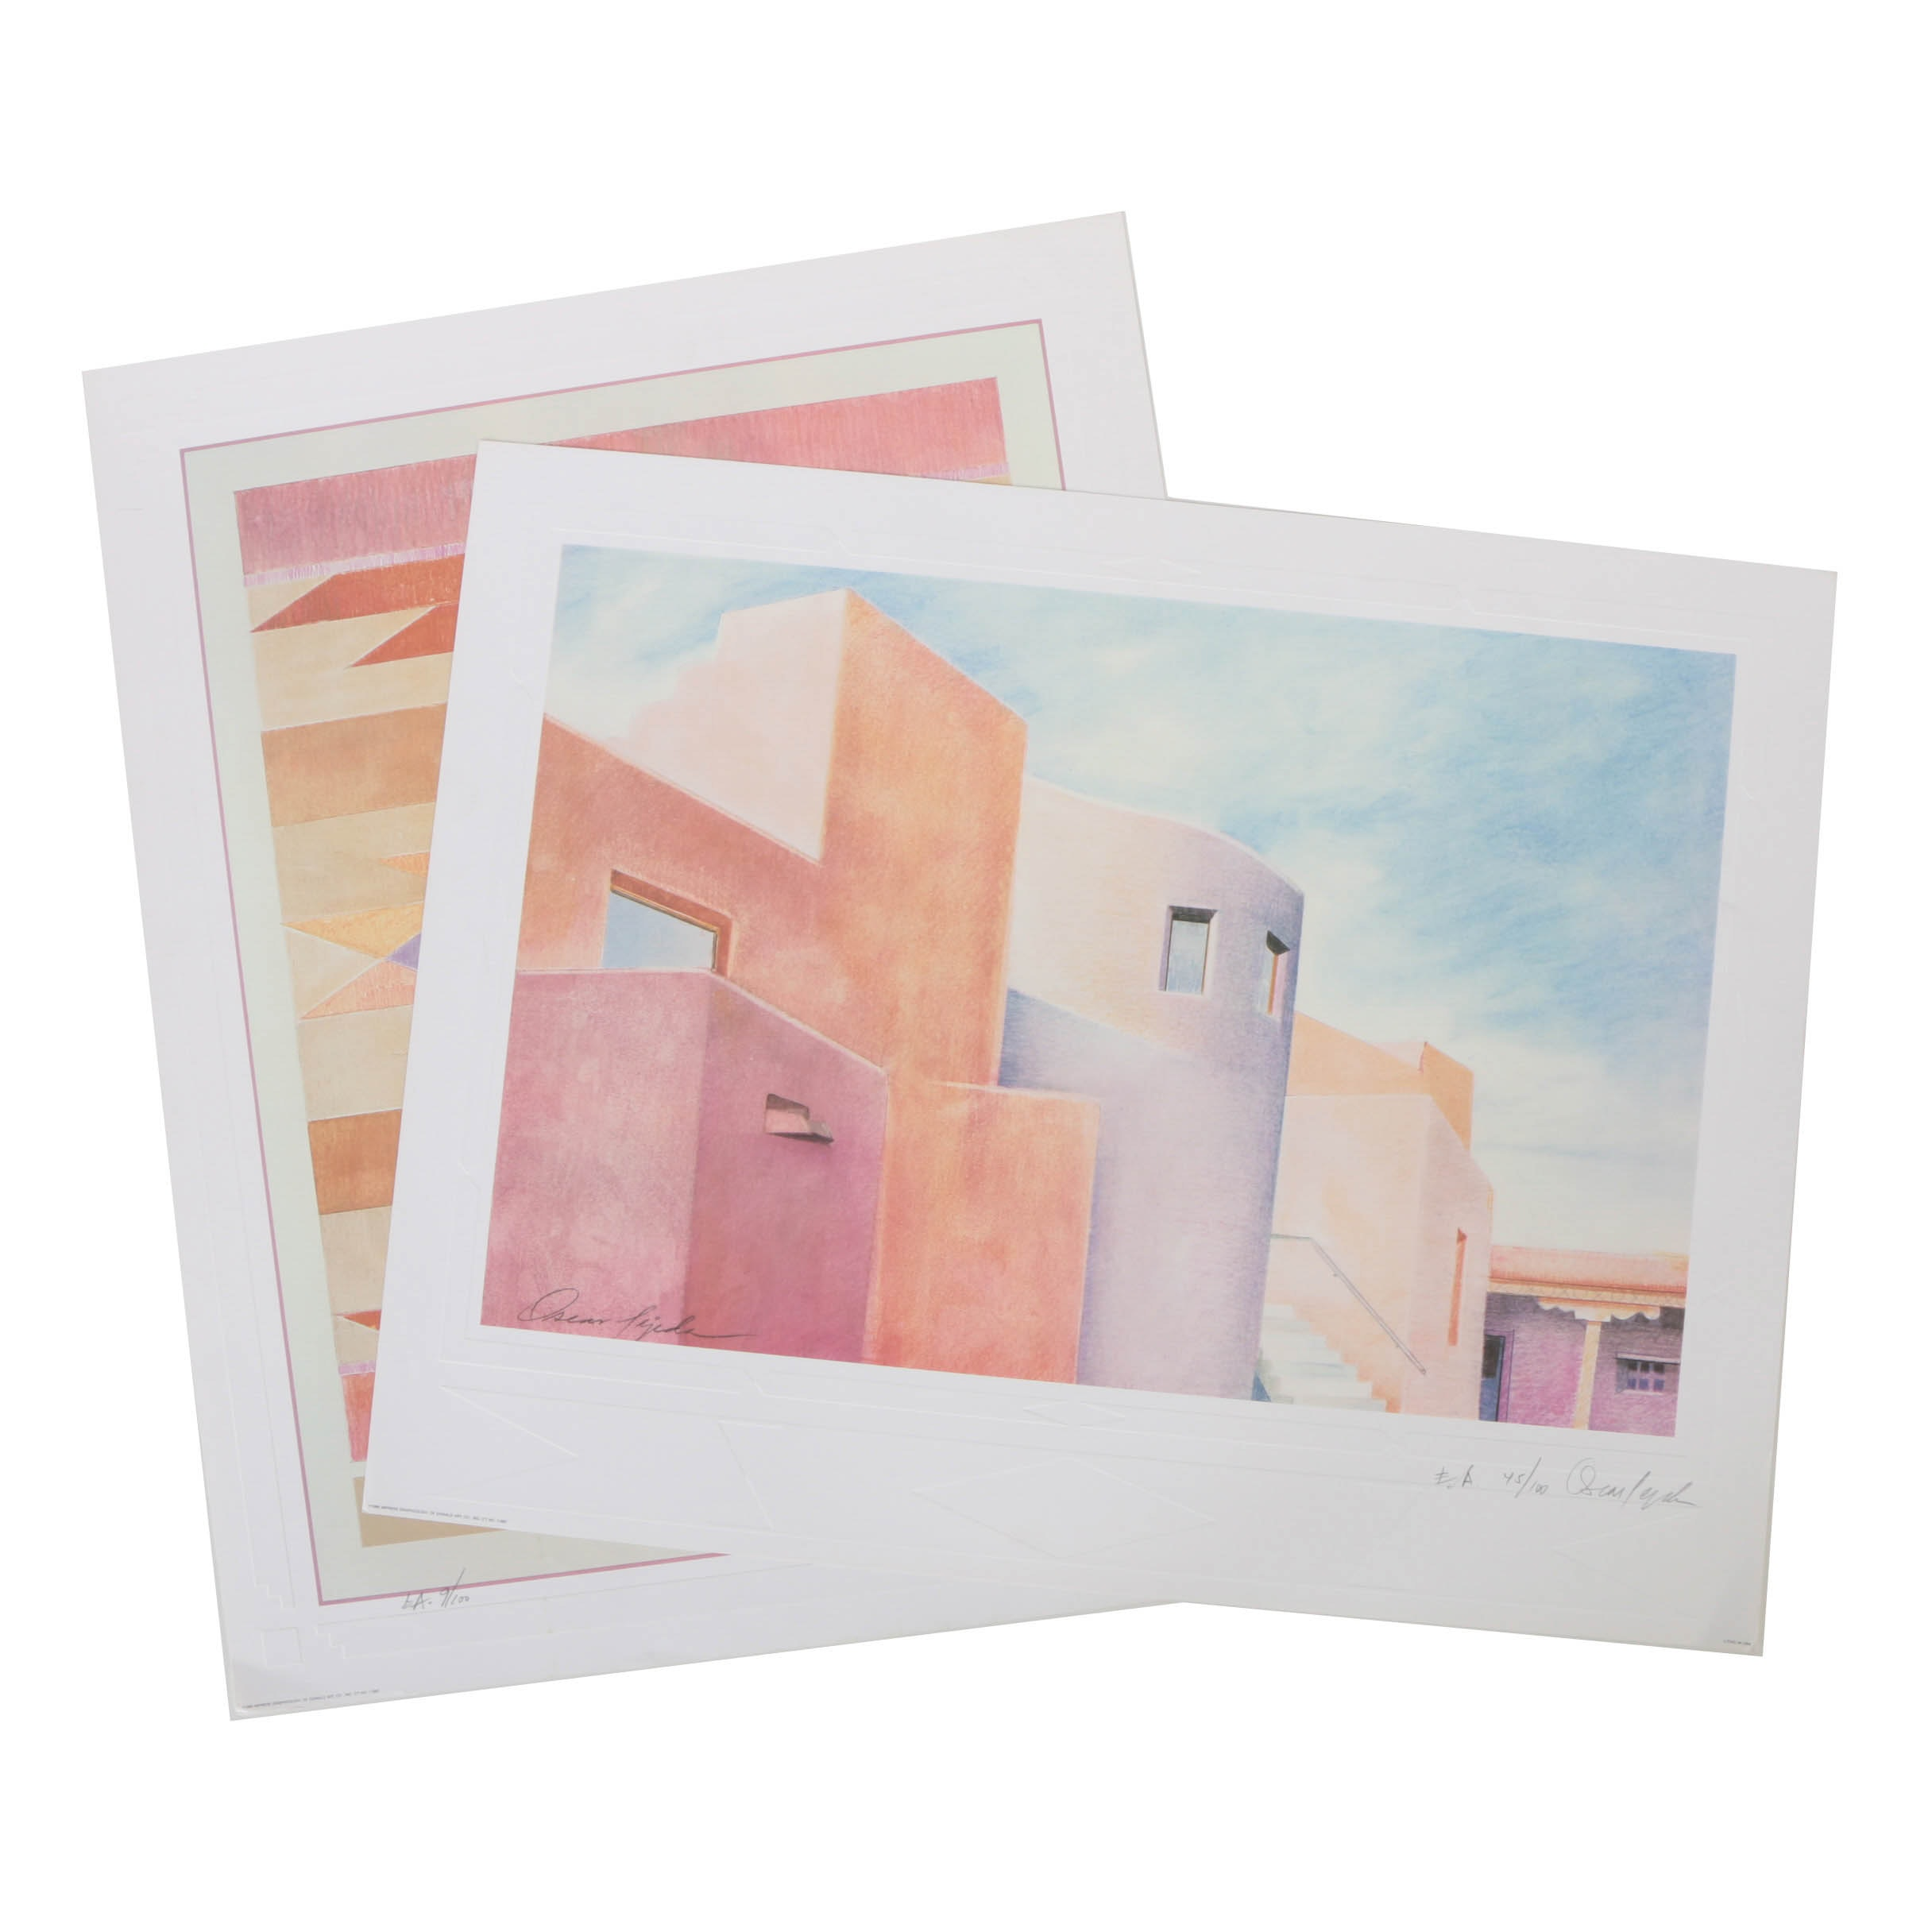 Oscar Tejeda 1988 Limited Edition Artist's Proof Offset Lithograph Prints